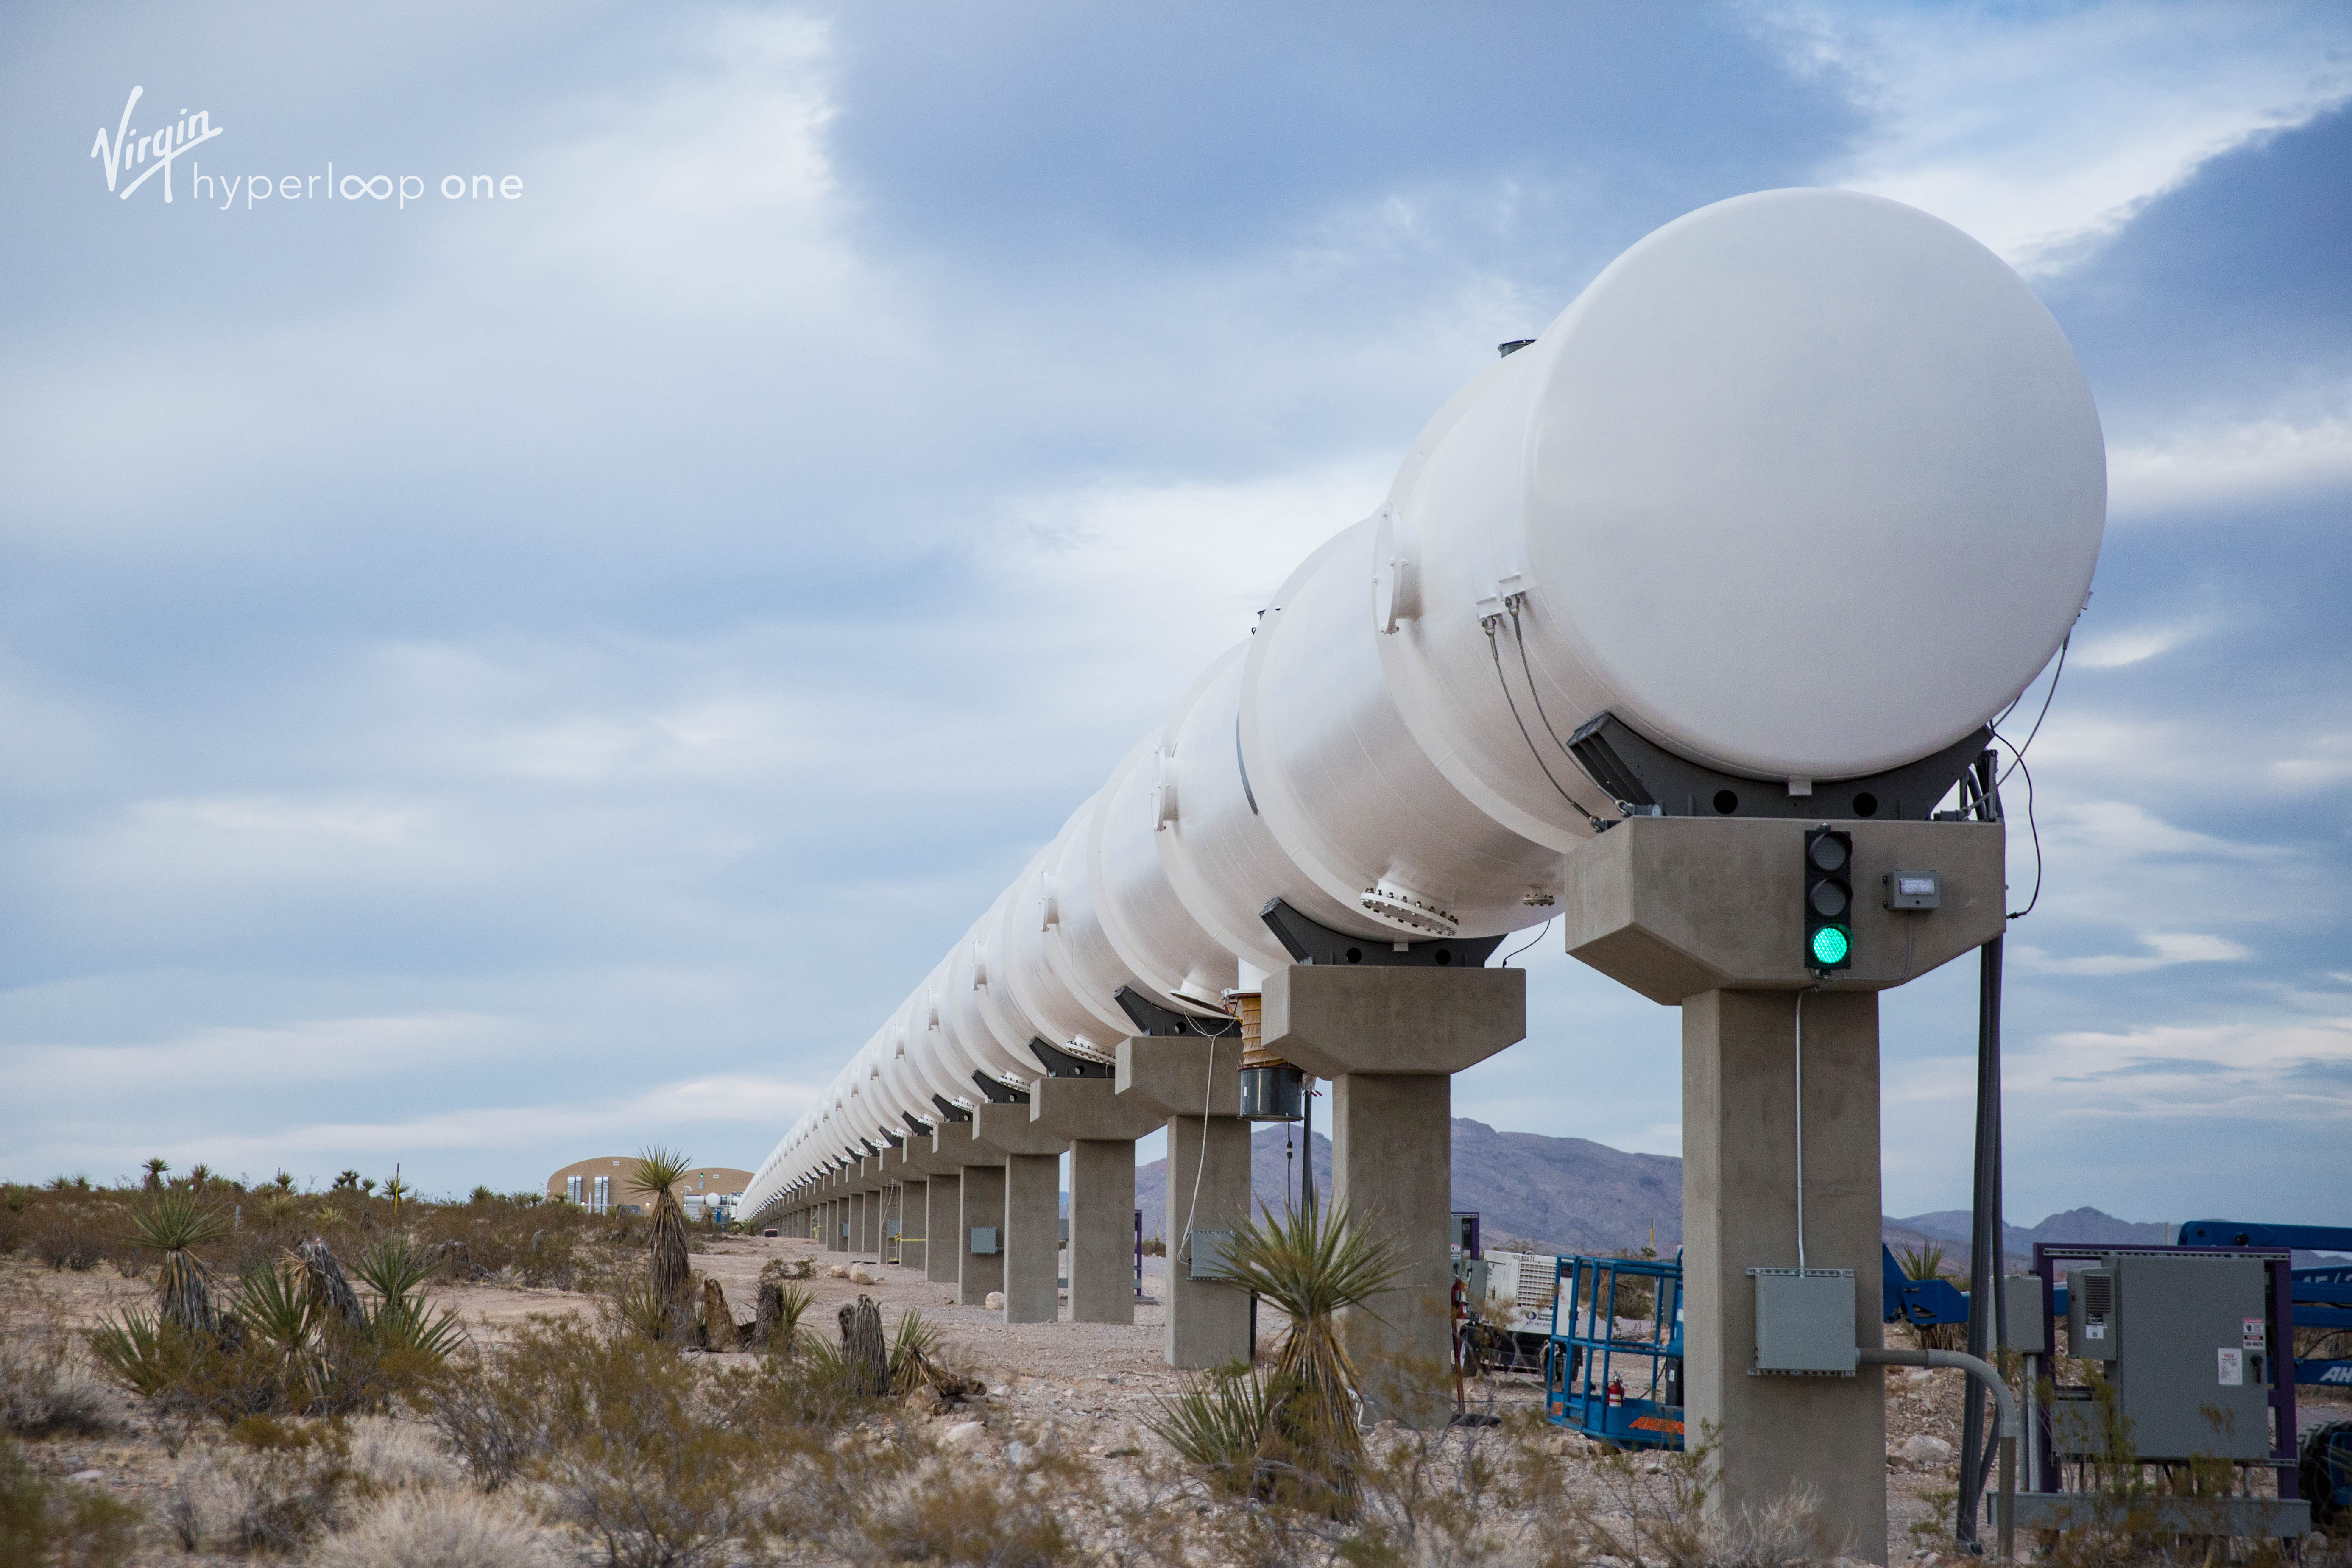 Virgin_Hyperloop_One_5.jpg